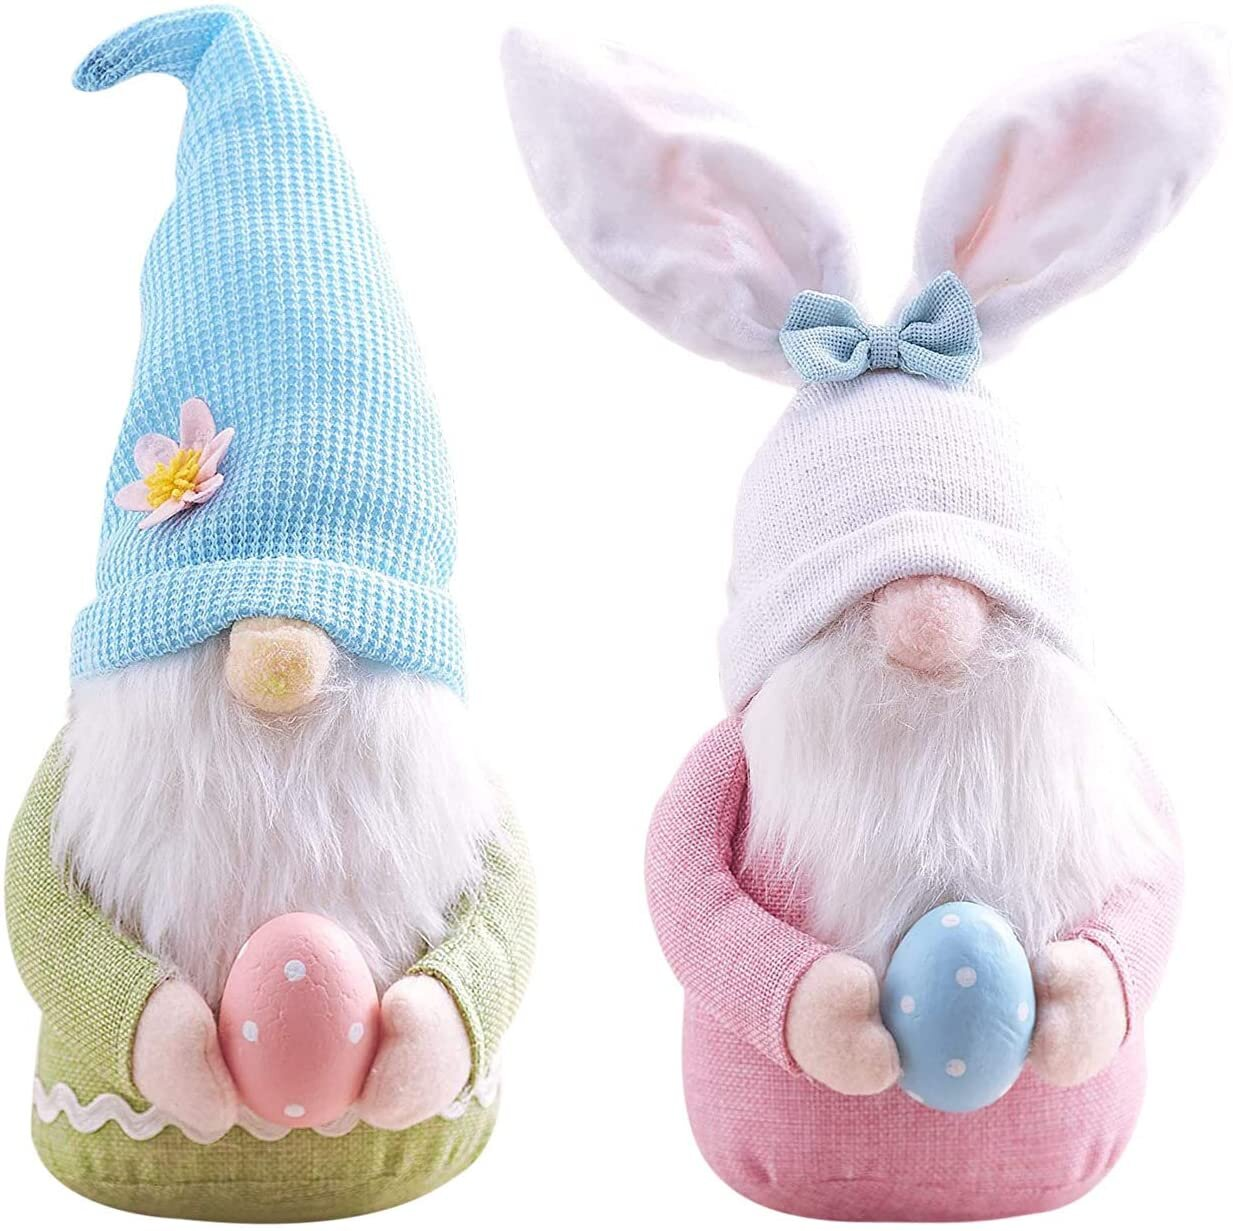 Handmade Easter Gnome Plush Dolls